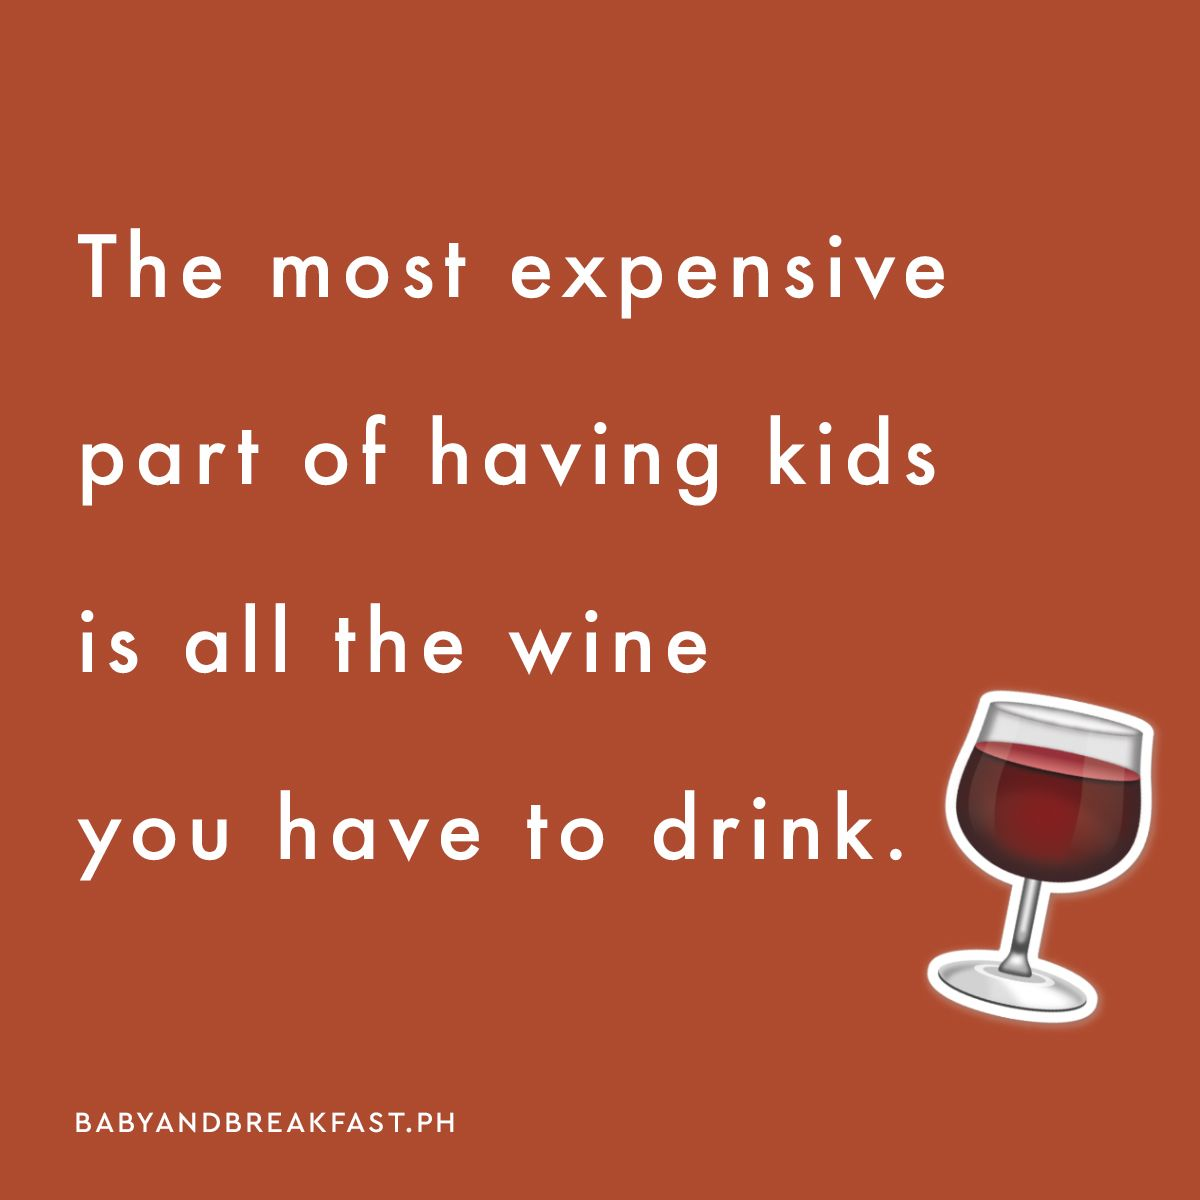 The Most Expensive Part Of Having Kids Is All The Wine You Have To Drink Humor Https Babyandbreakfast Ph Kids Drinks Most Expensive